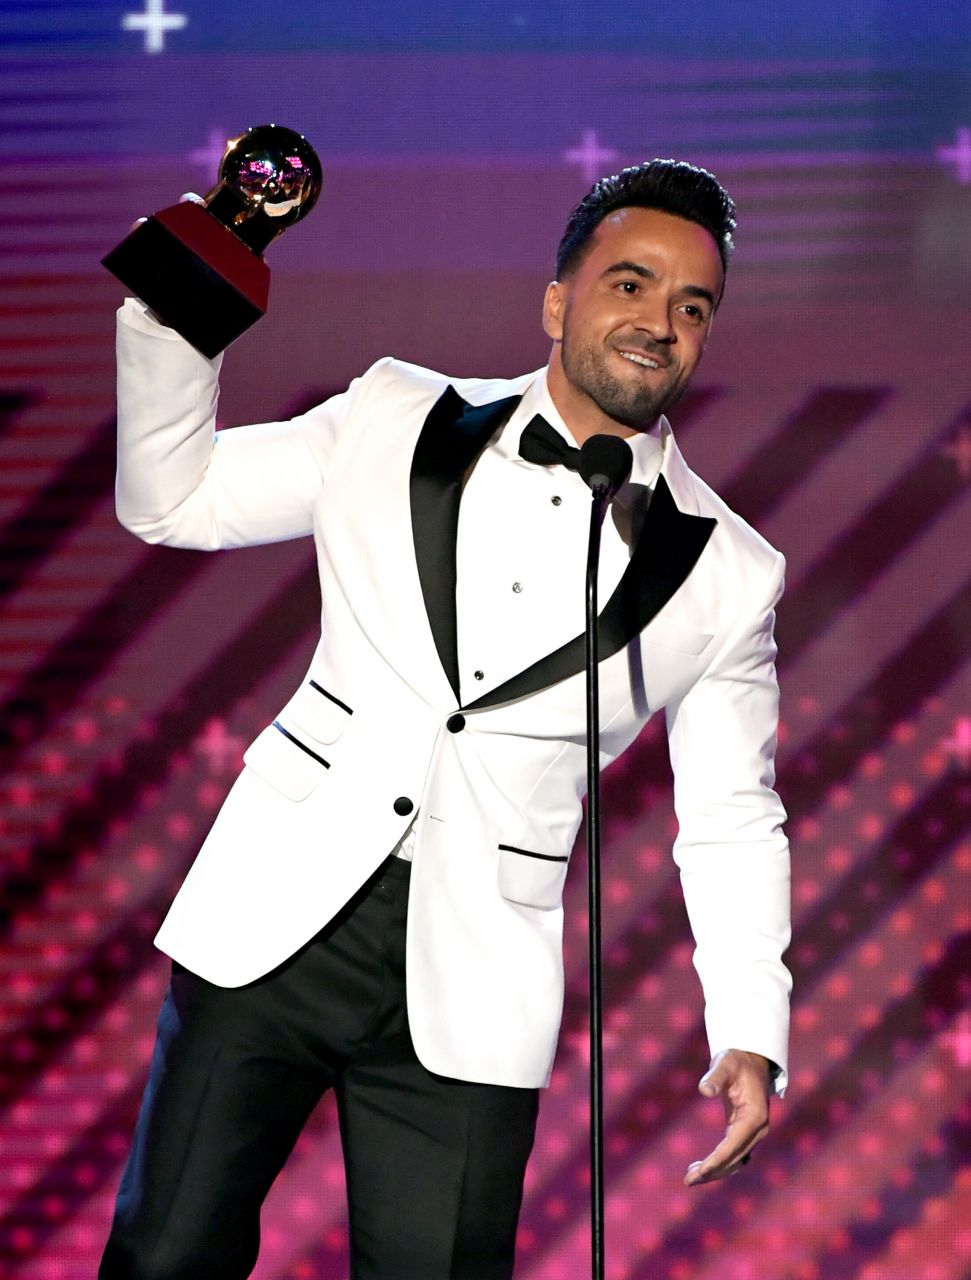 LAS VEGAS, NV - NOVEMBER 16:  Luis Fonsi accepts Song of the Year for 'Despacito' onstage at the 18th Annual Latin Grammy Awards at MGM Grand Garden Arena on November 16, 2017 in Las Vegas, Nevada.  (Photo by Kevin Winter/Getty Images)